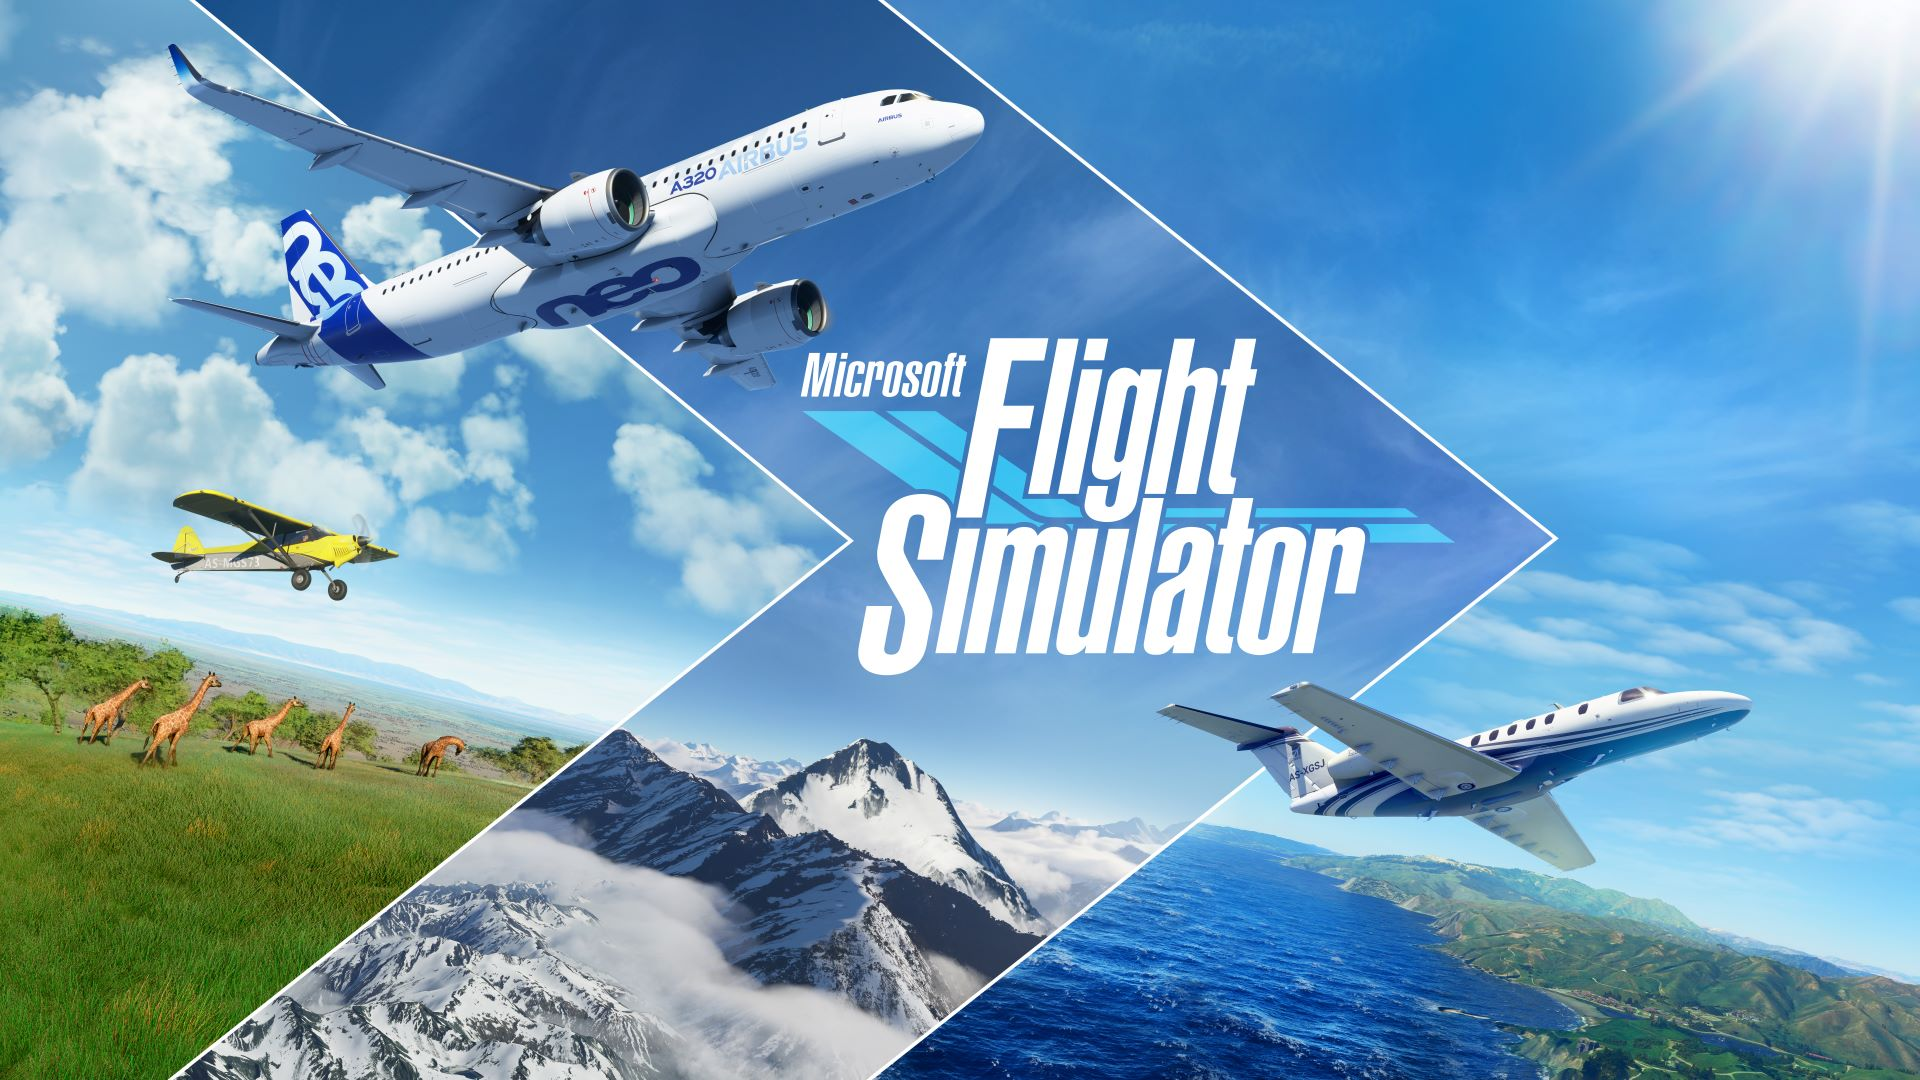 Download Gratis Microsoft Flight Simulator Full Version